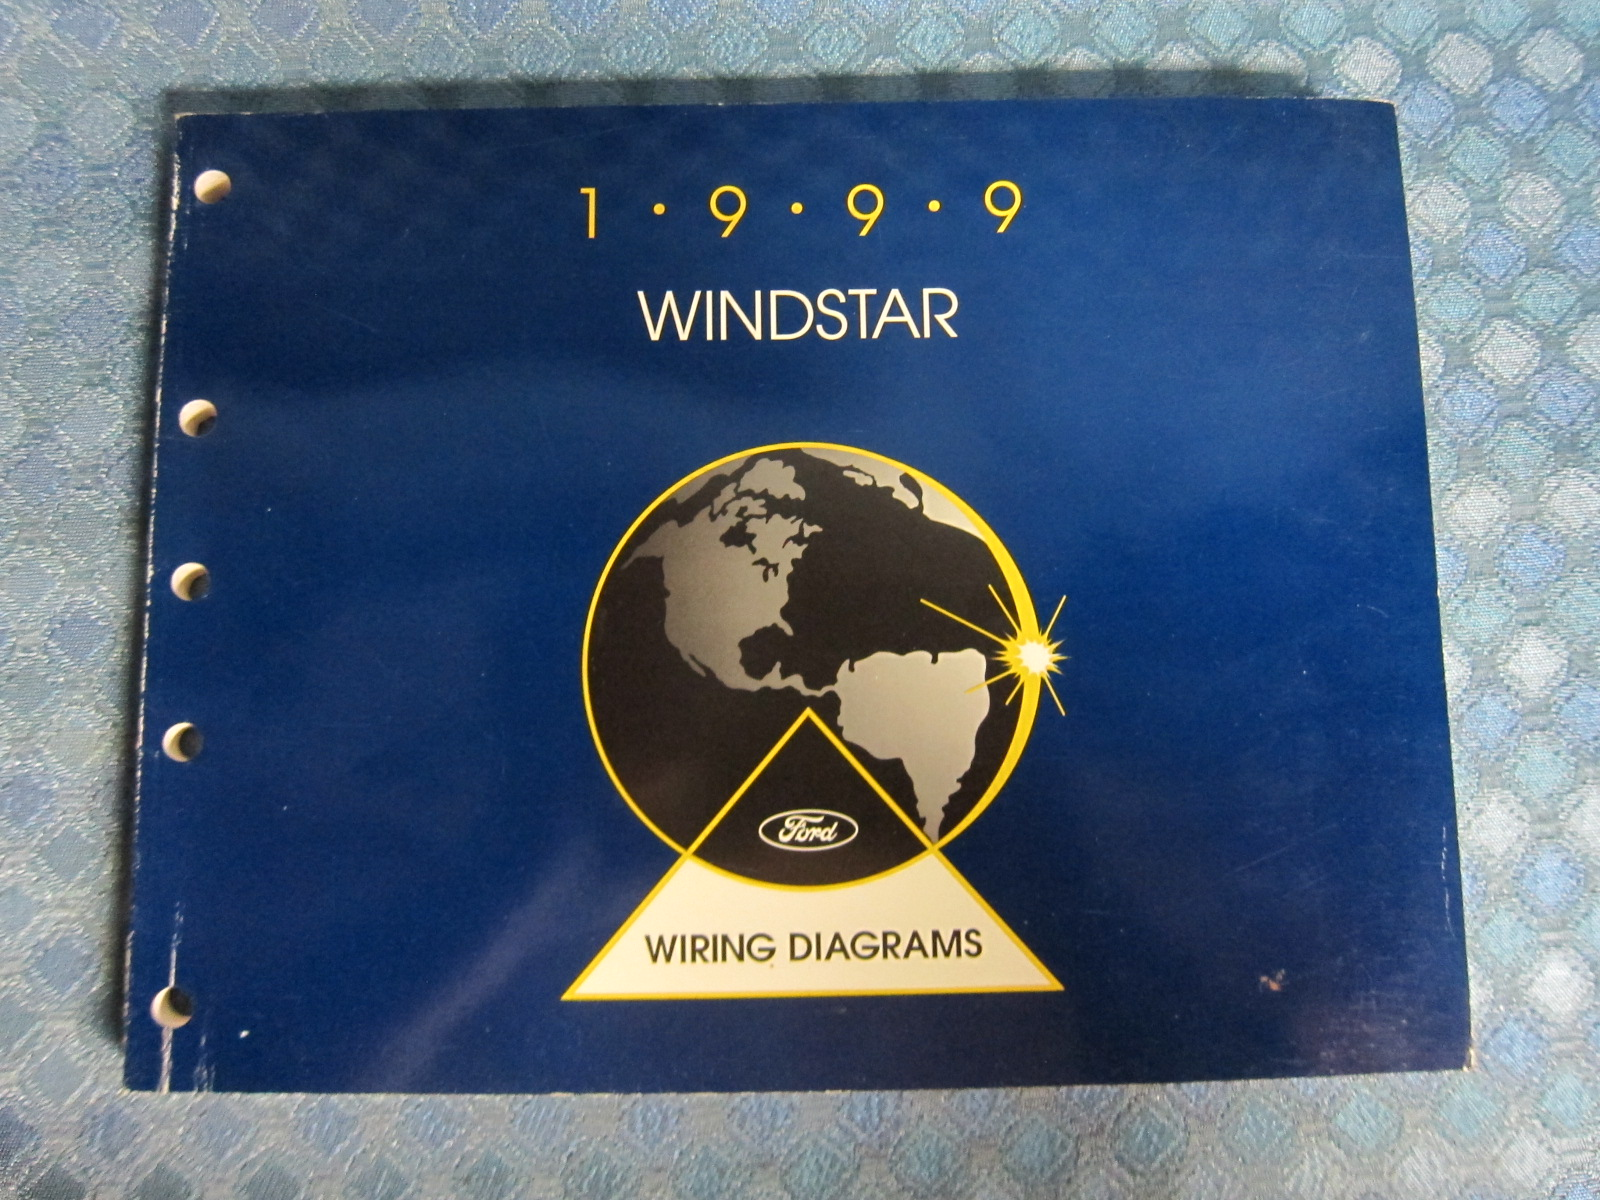 1999 Ford Windstar Original Oem Wiring Diagrams Manual - Nos Texas Parts  Llc